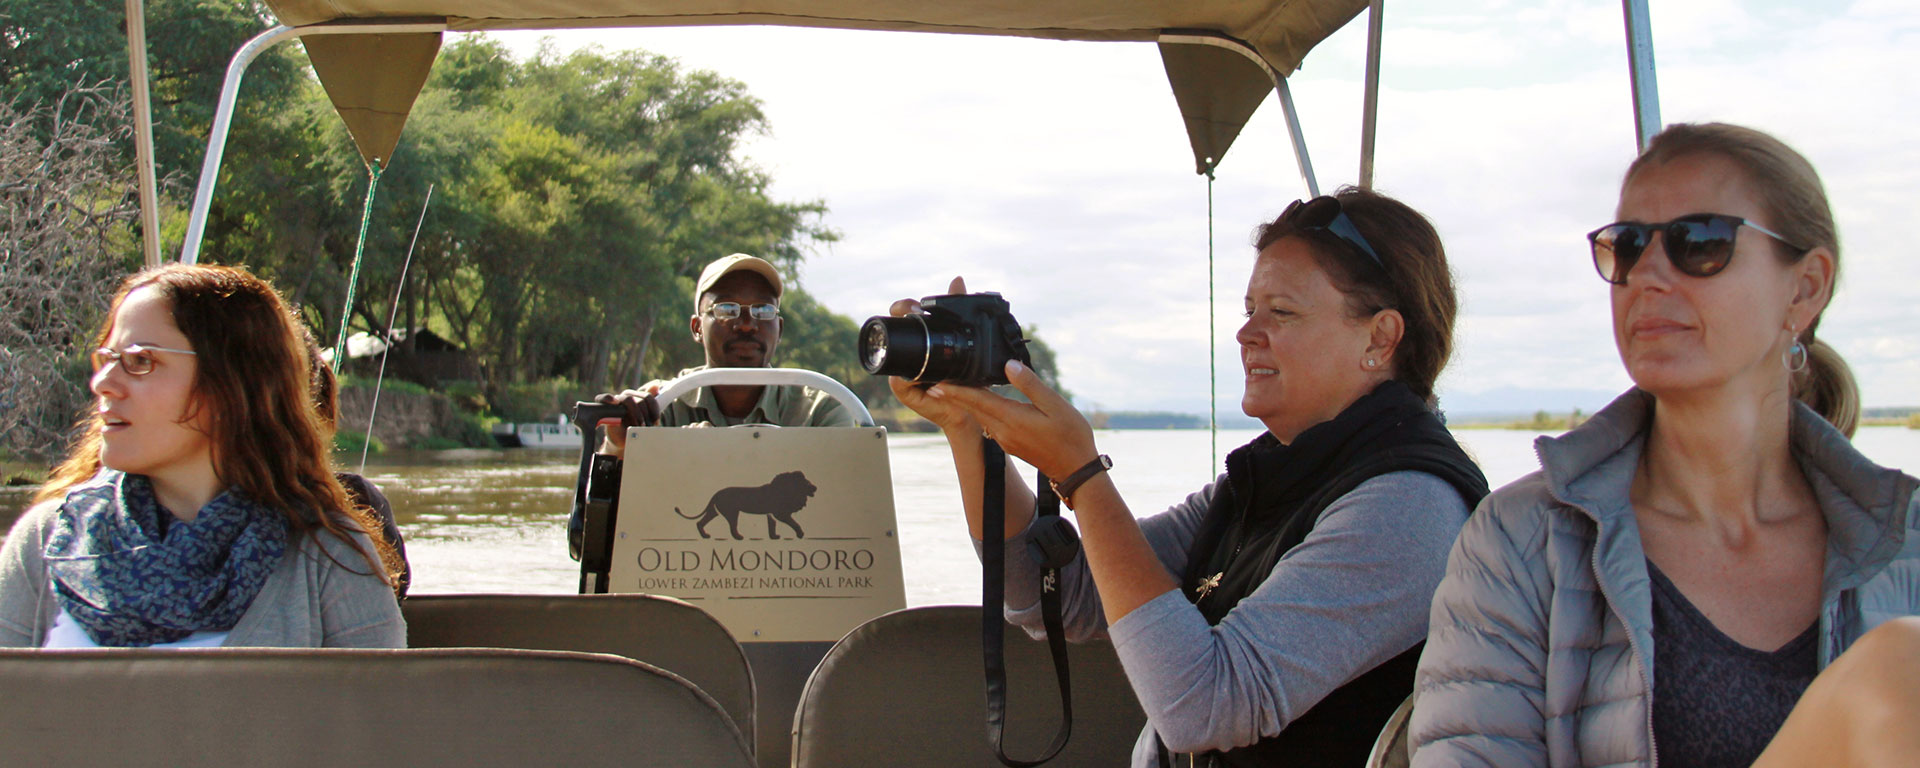 Go2Africans Liesel, Natasha and Rikke enjoying a river transfer from Old Mondoro to Chiawa – herds of elephants are frequently spotted drinking at the water's edge.